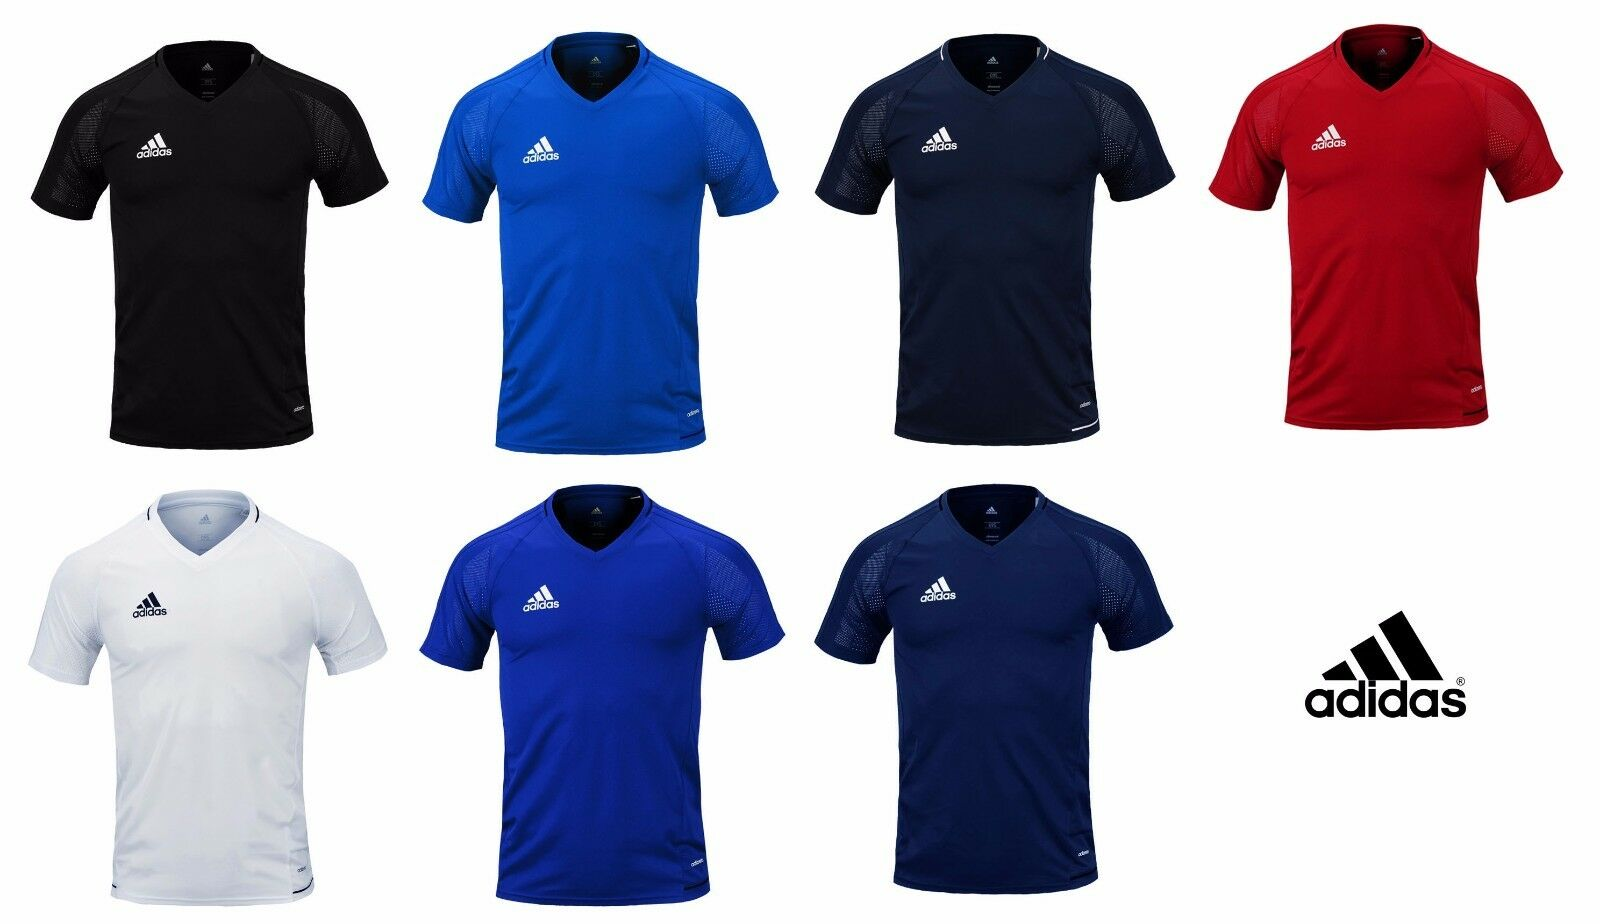 Adidas Tiro 17 Training S S Jersey T-Shirt Soccer Football Climacool Shirt Top